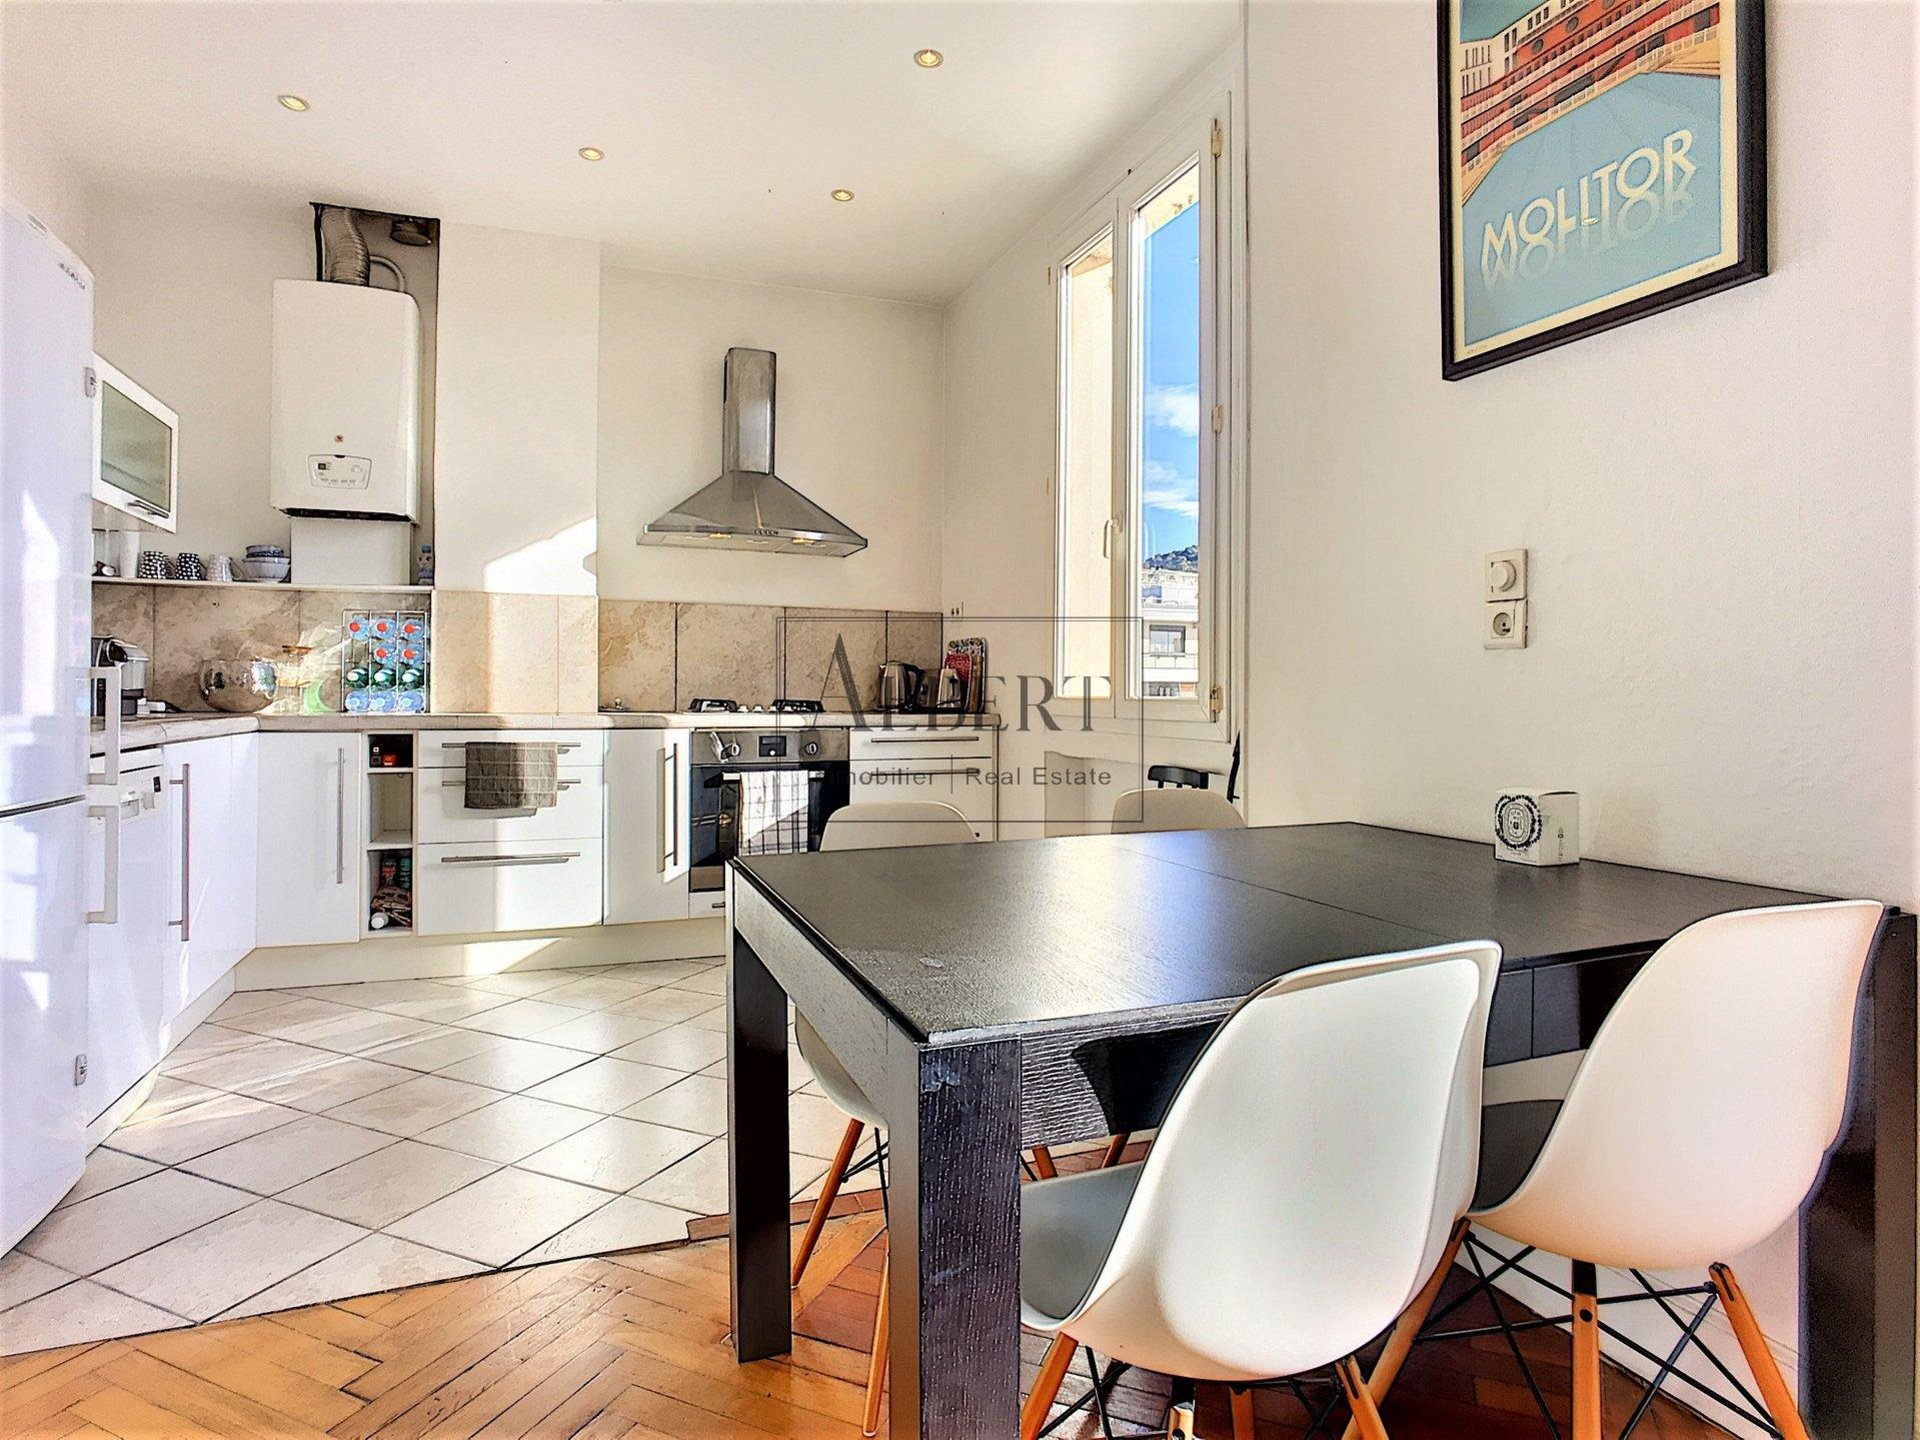 Cannes Montfleury 3-4 Rooms Bourgeois